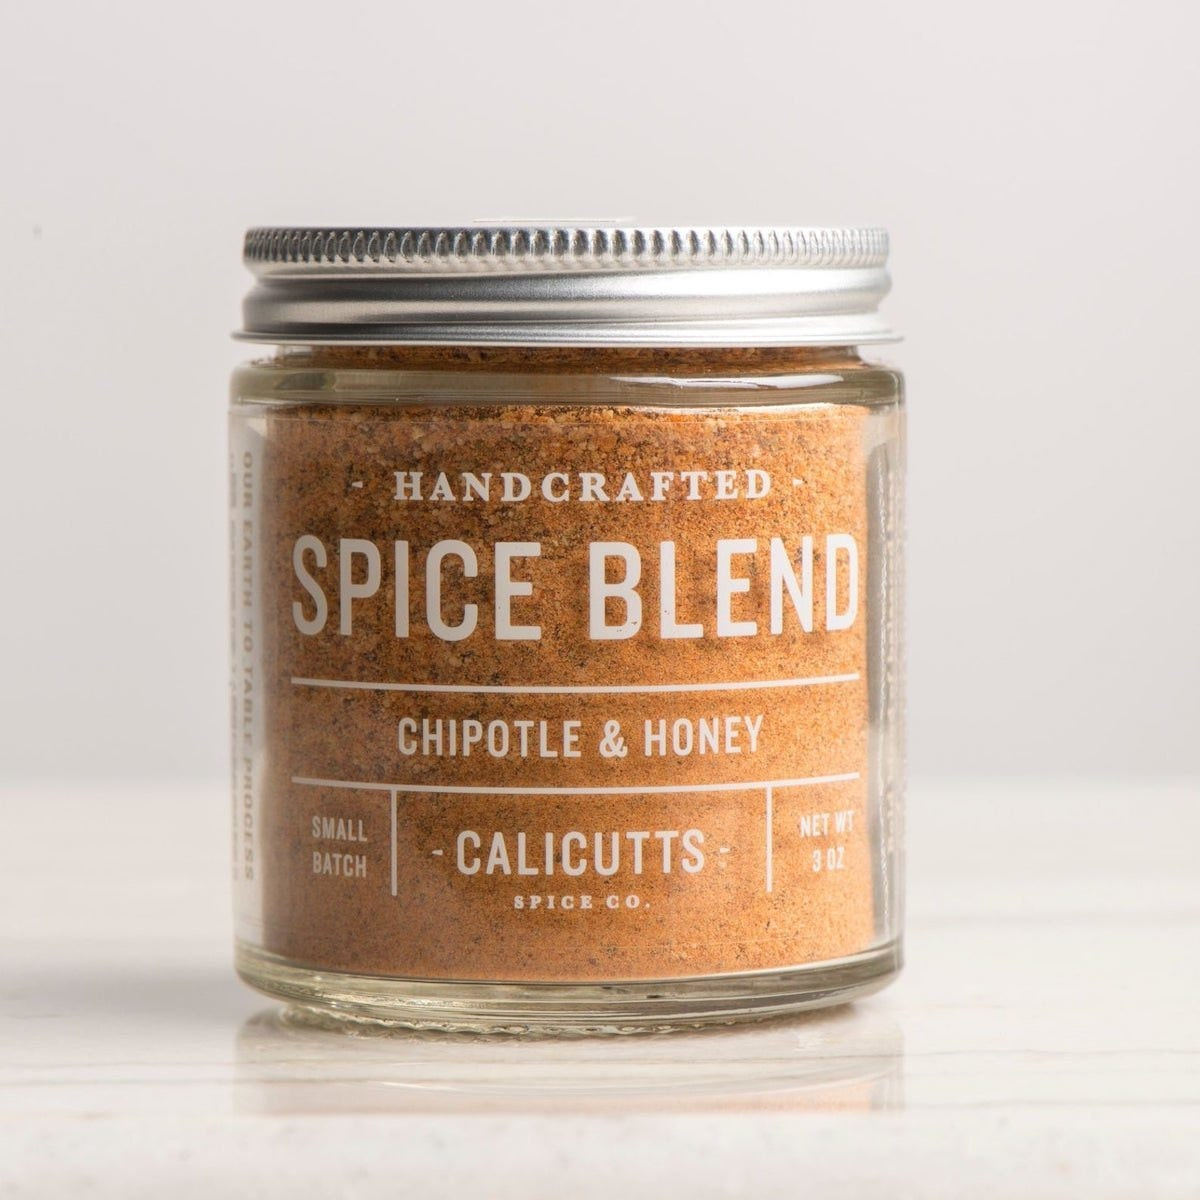 Chipotle and honey spice blend from Calicutts Spice Co.